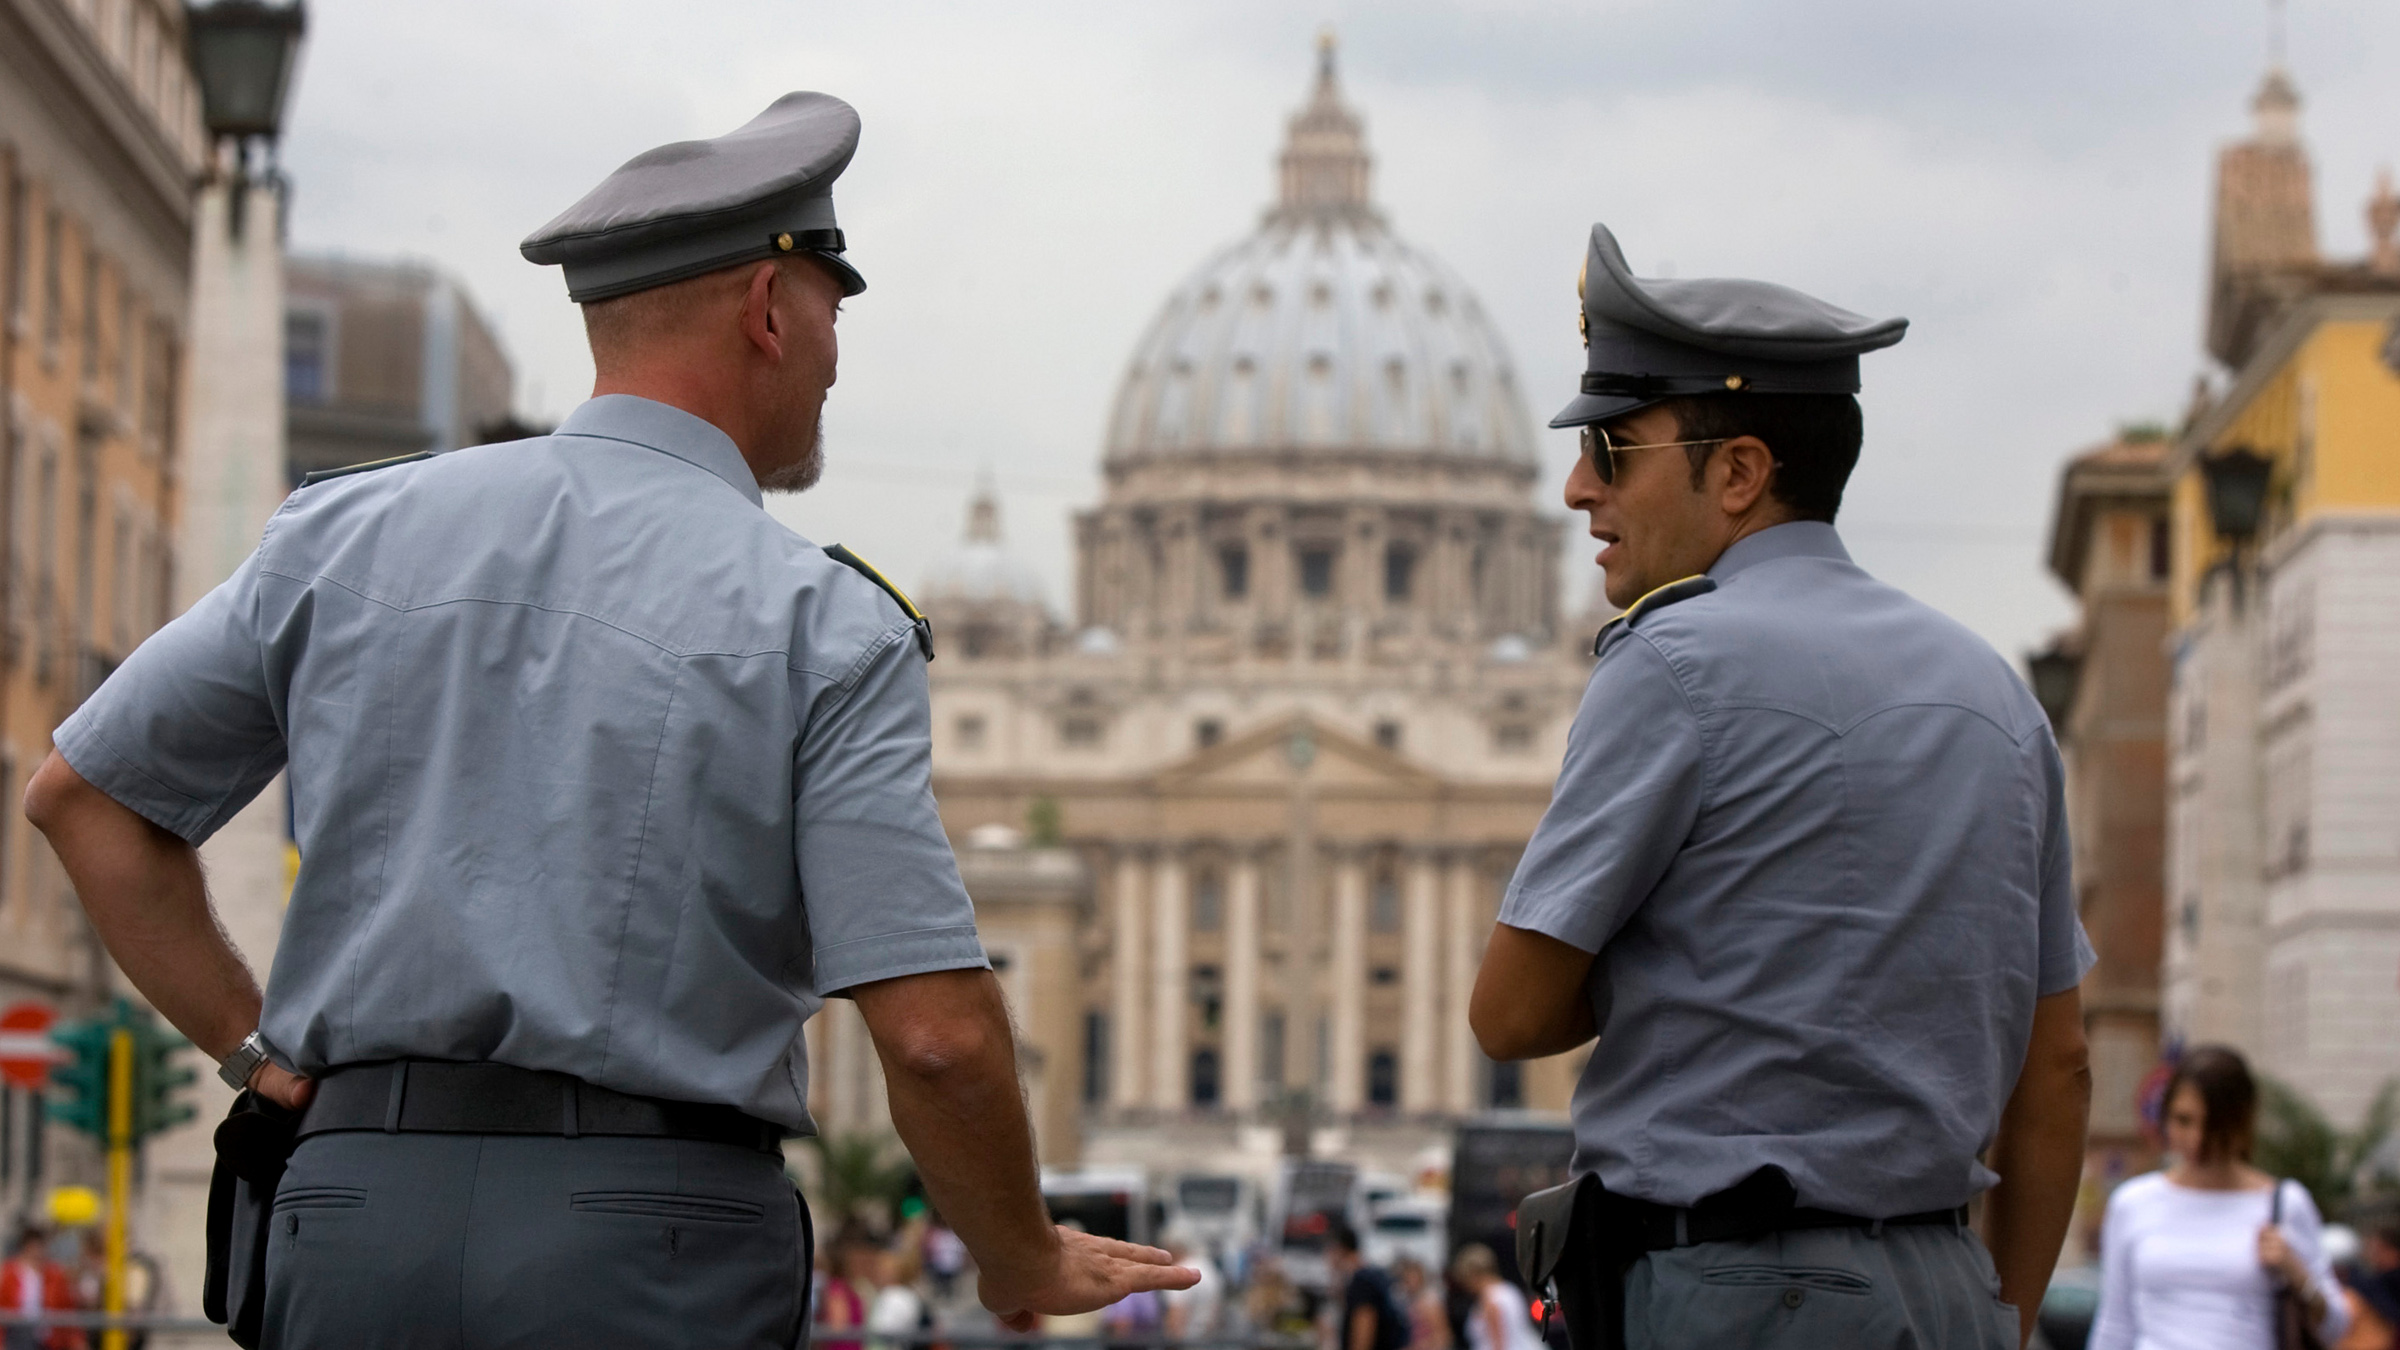 """In this Tuesday, Sept. 21, 2010 file photo Italian financial Police officers talk to each other in front of St. Peter's square at the Vatican. A Rome court has upheld the seizure of €23 million (€31 million) from a Vatican bank account, and the Holy See is expressing """"astonishment"""" over the decision. Vatican spokesman the Rev. Federico Lombardi says the Holy See """"learned of the ruling with astonishment."""" Lombardi said Wednesday, oCT. 20, 2010 that Vatican bank officials maintain they can clarify the matter soon. The seizure last month was based on alleged violations of Italy's laws against money laundering. Lombardi indicated that the Vatican is contending the problem is a matter of how the regulations are interpreted."""